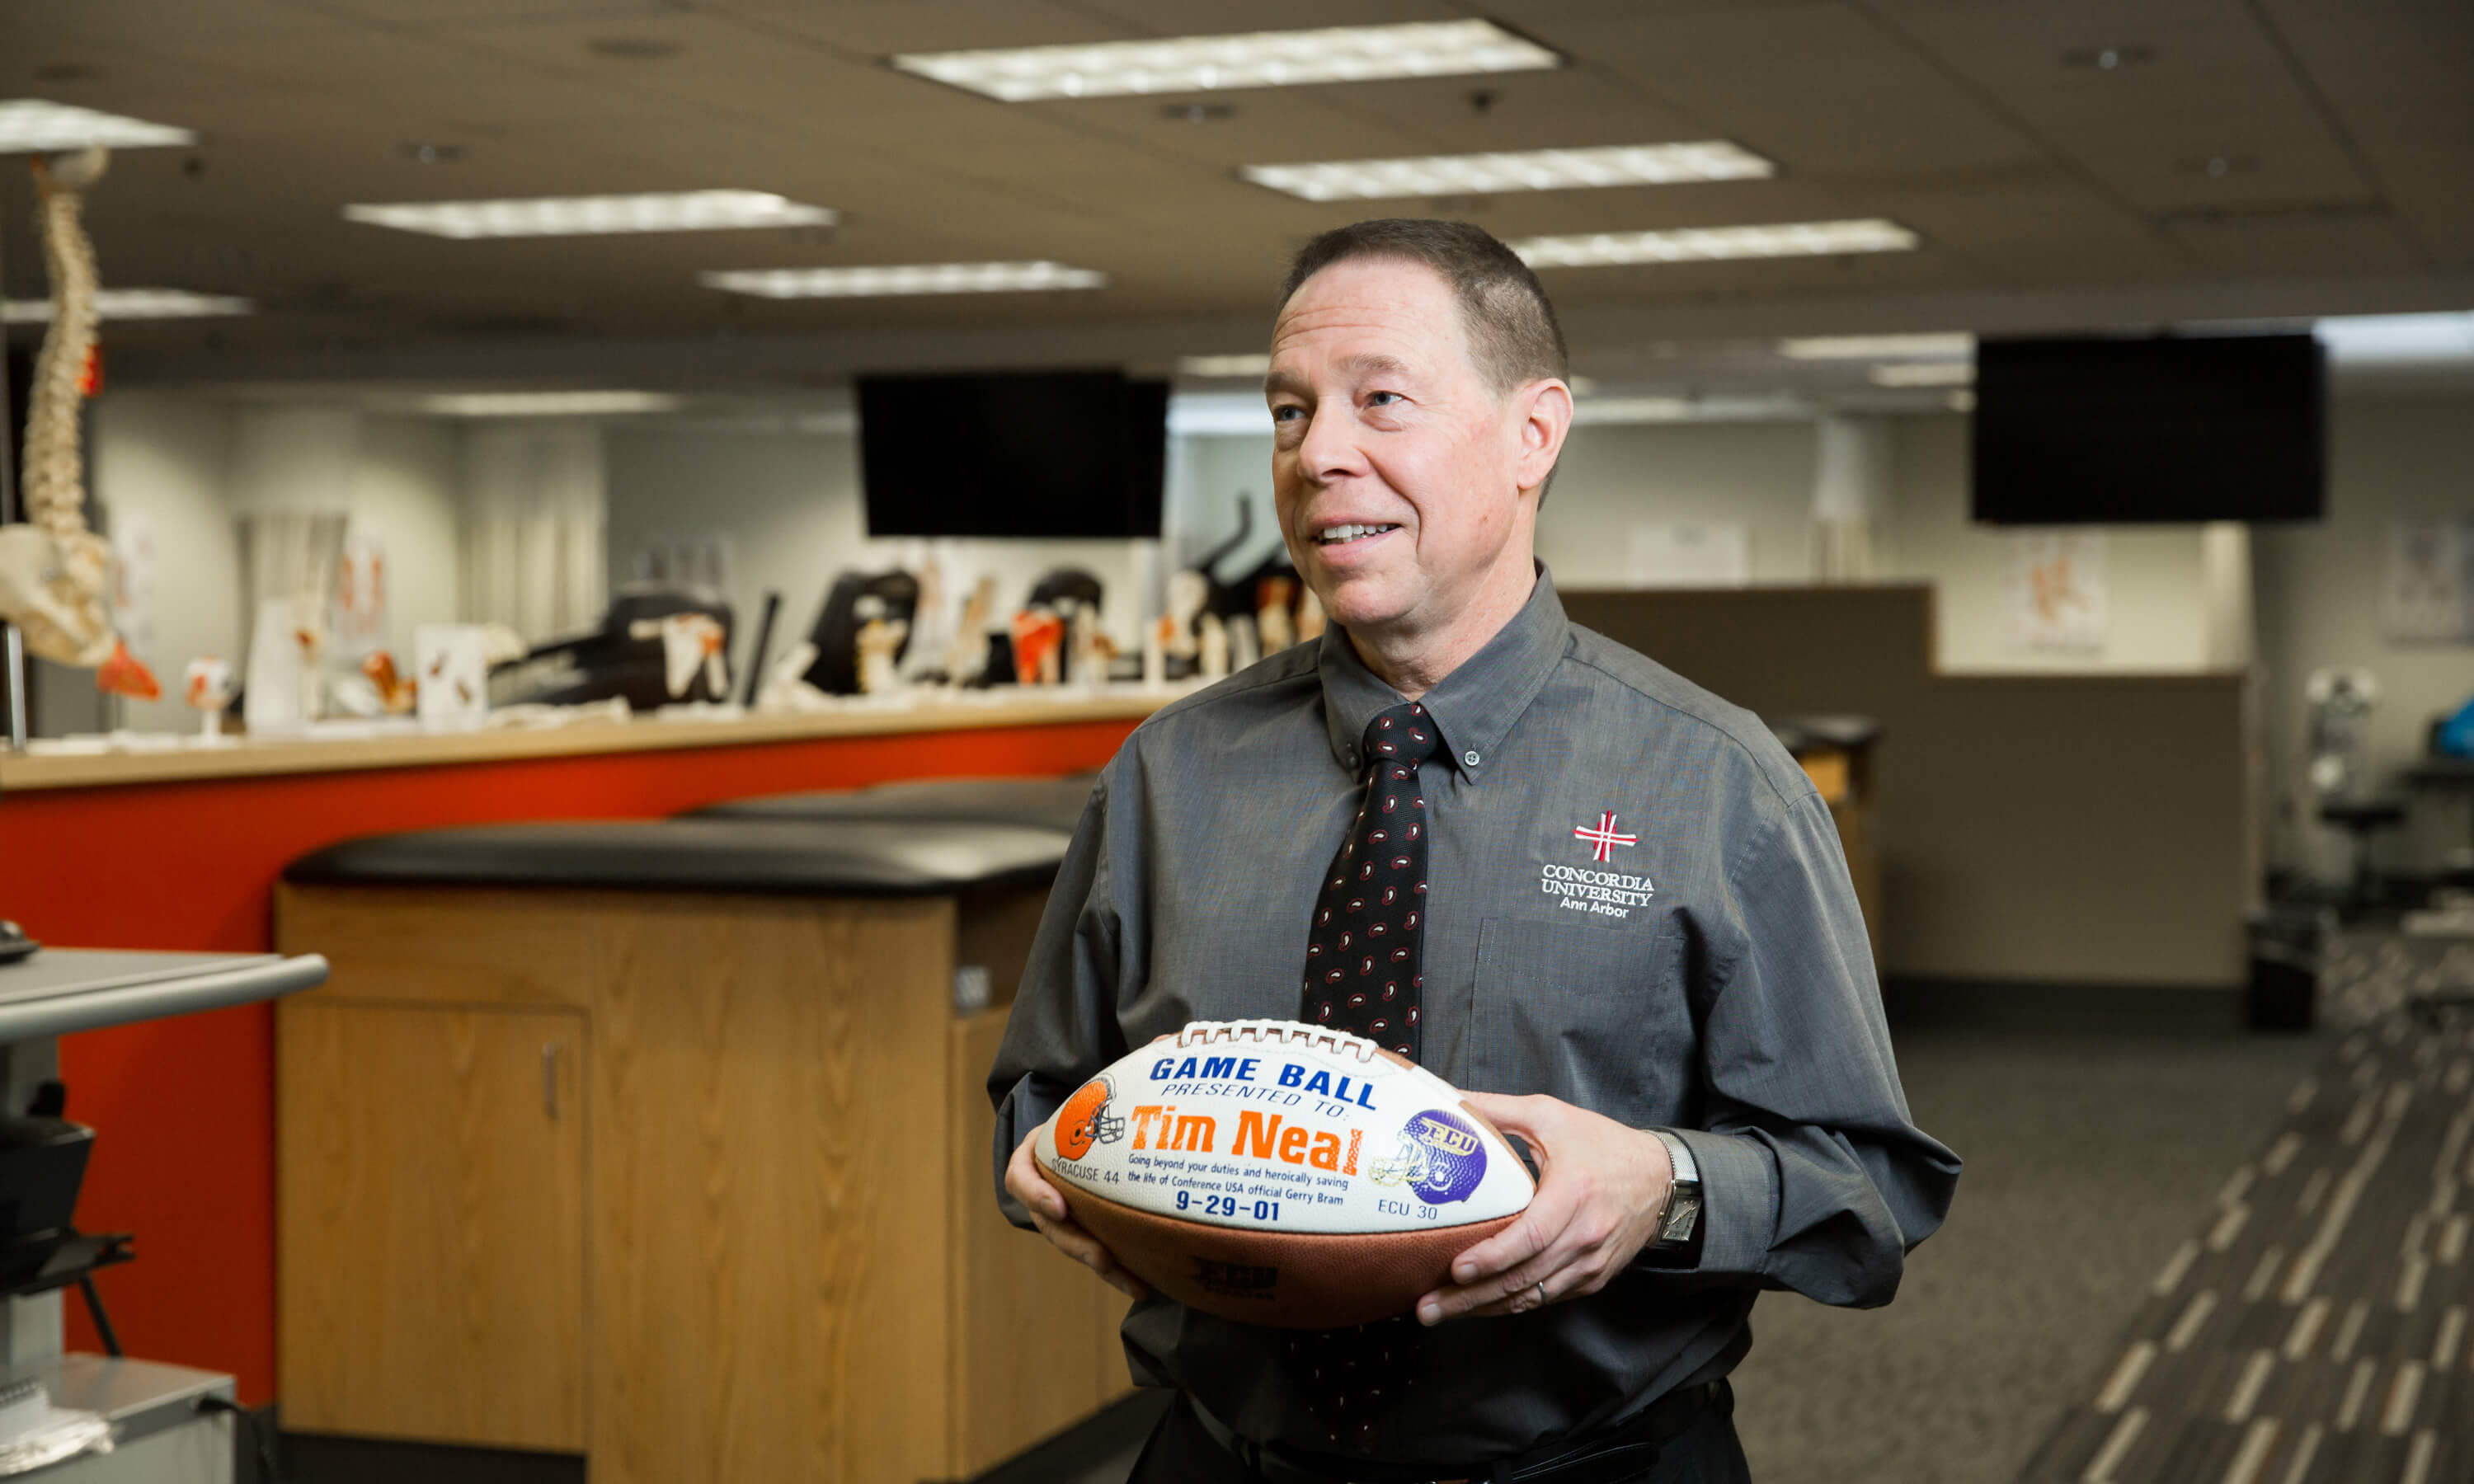 An expert in the field combines faith and excellence in the CUAA classroom